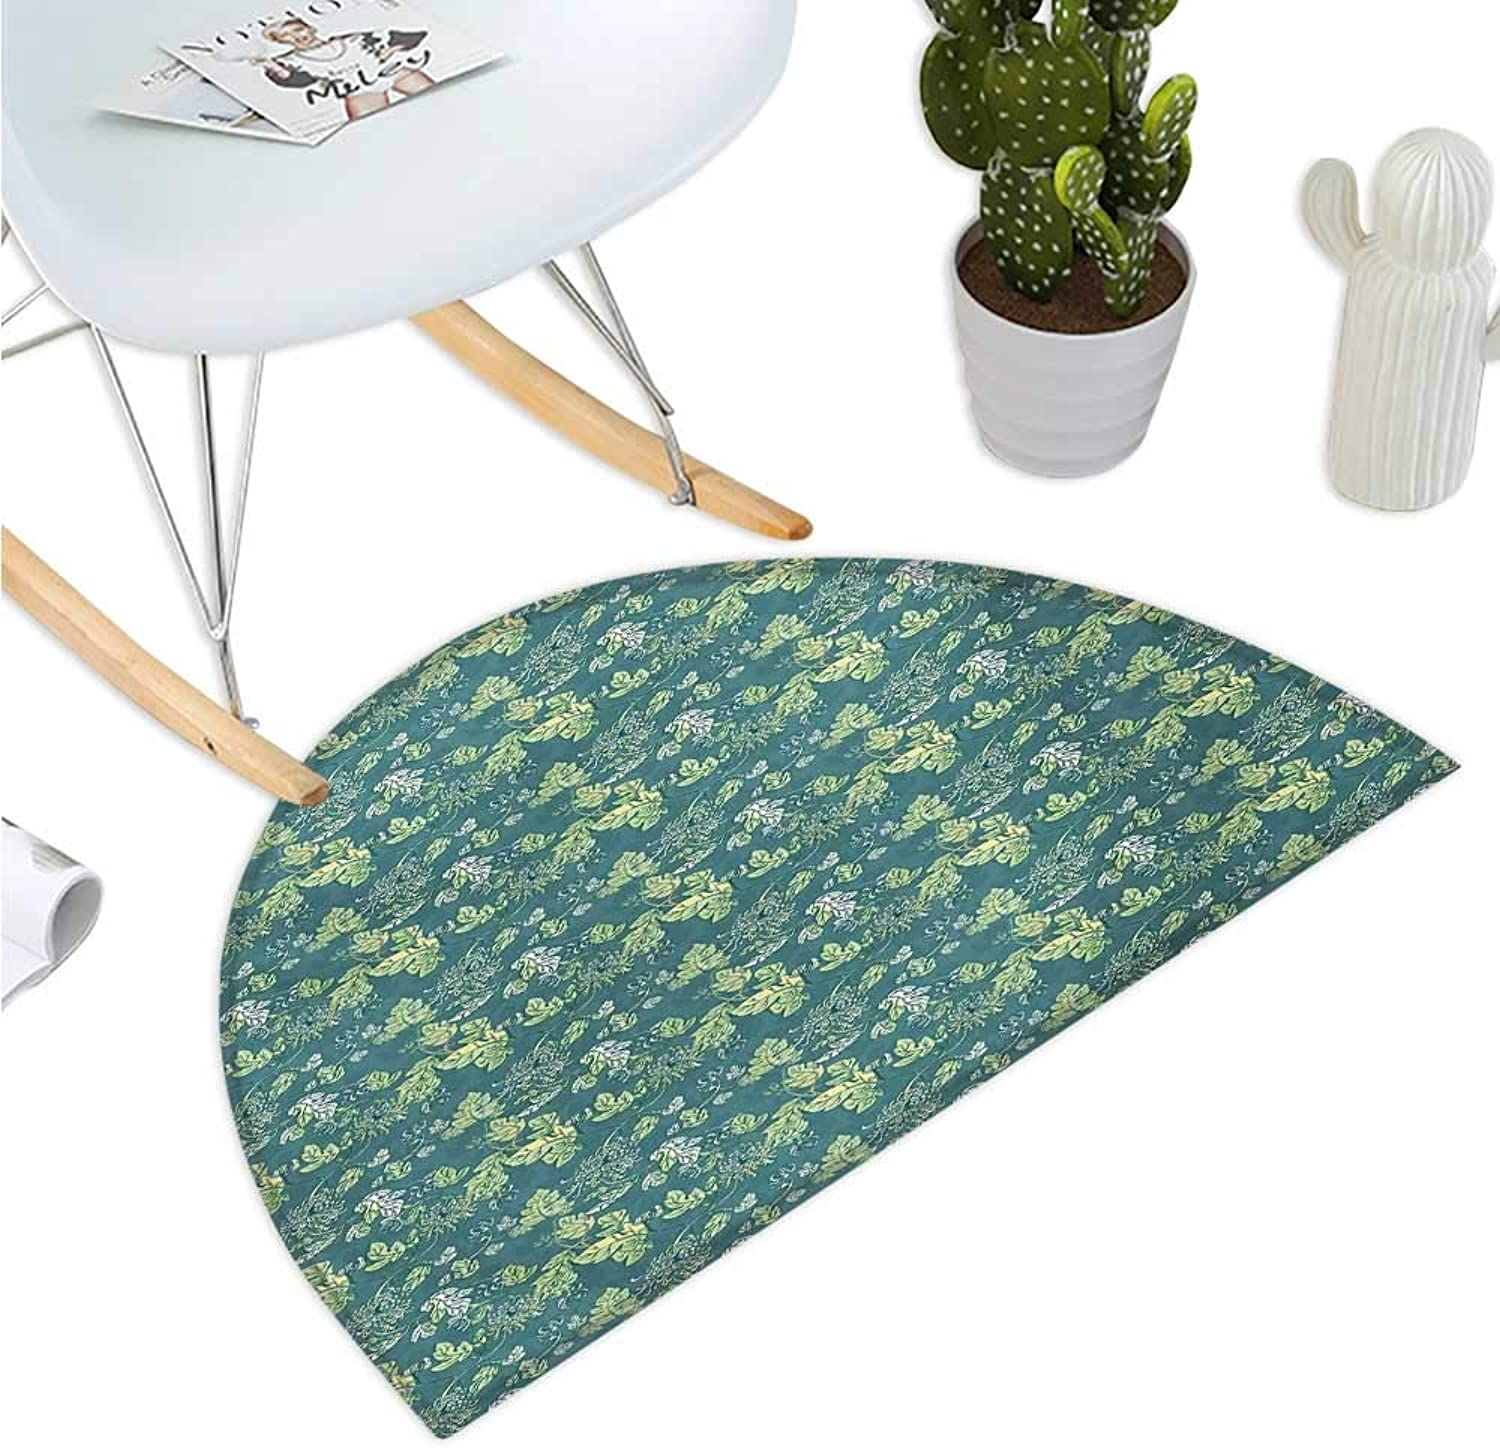 Leaves Semicircle Doormat Pale colord Foliage with Curly Stems Abstract Illustration of Nature Halfmoon doormats H 47.2  xD 70.8  Pale Green Teal White